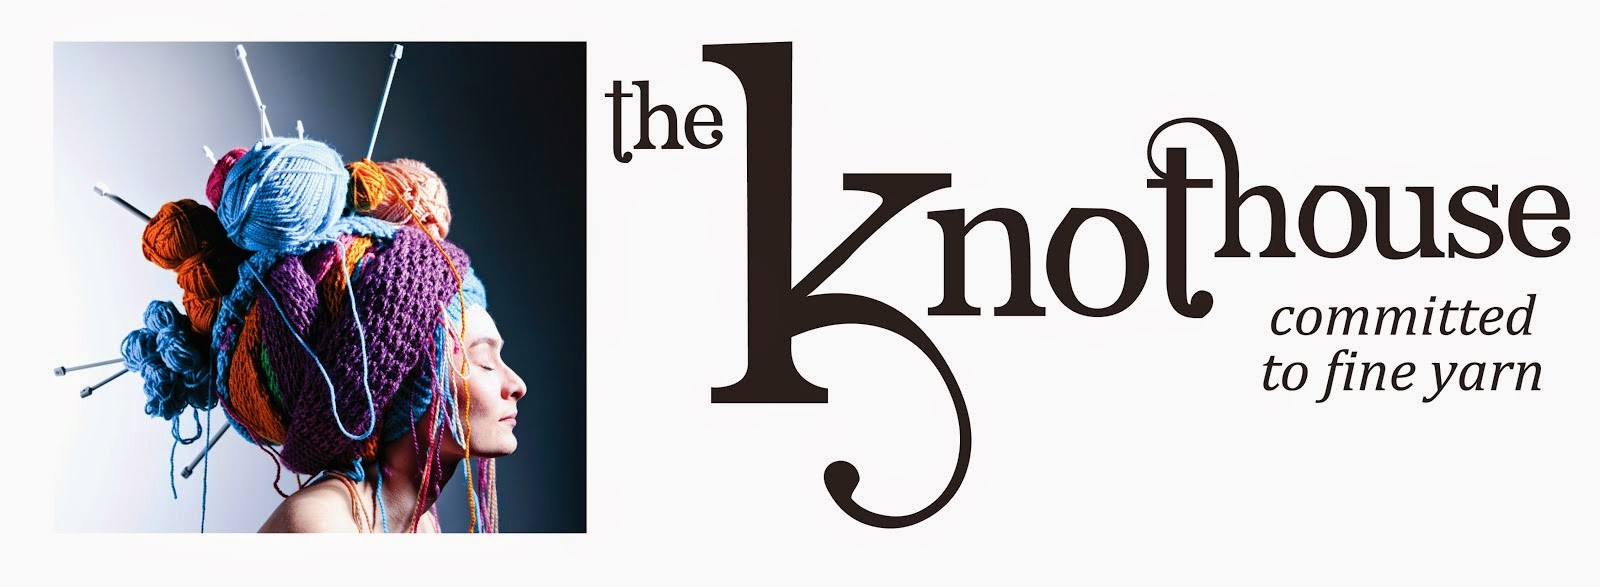 Tier 1 Sponsor: The Knot House